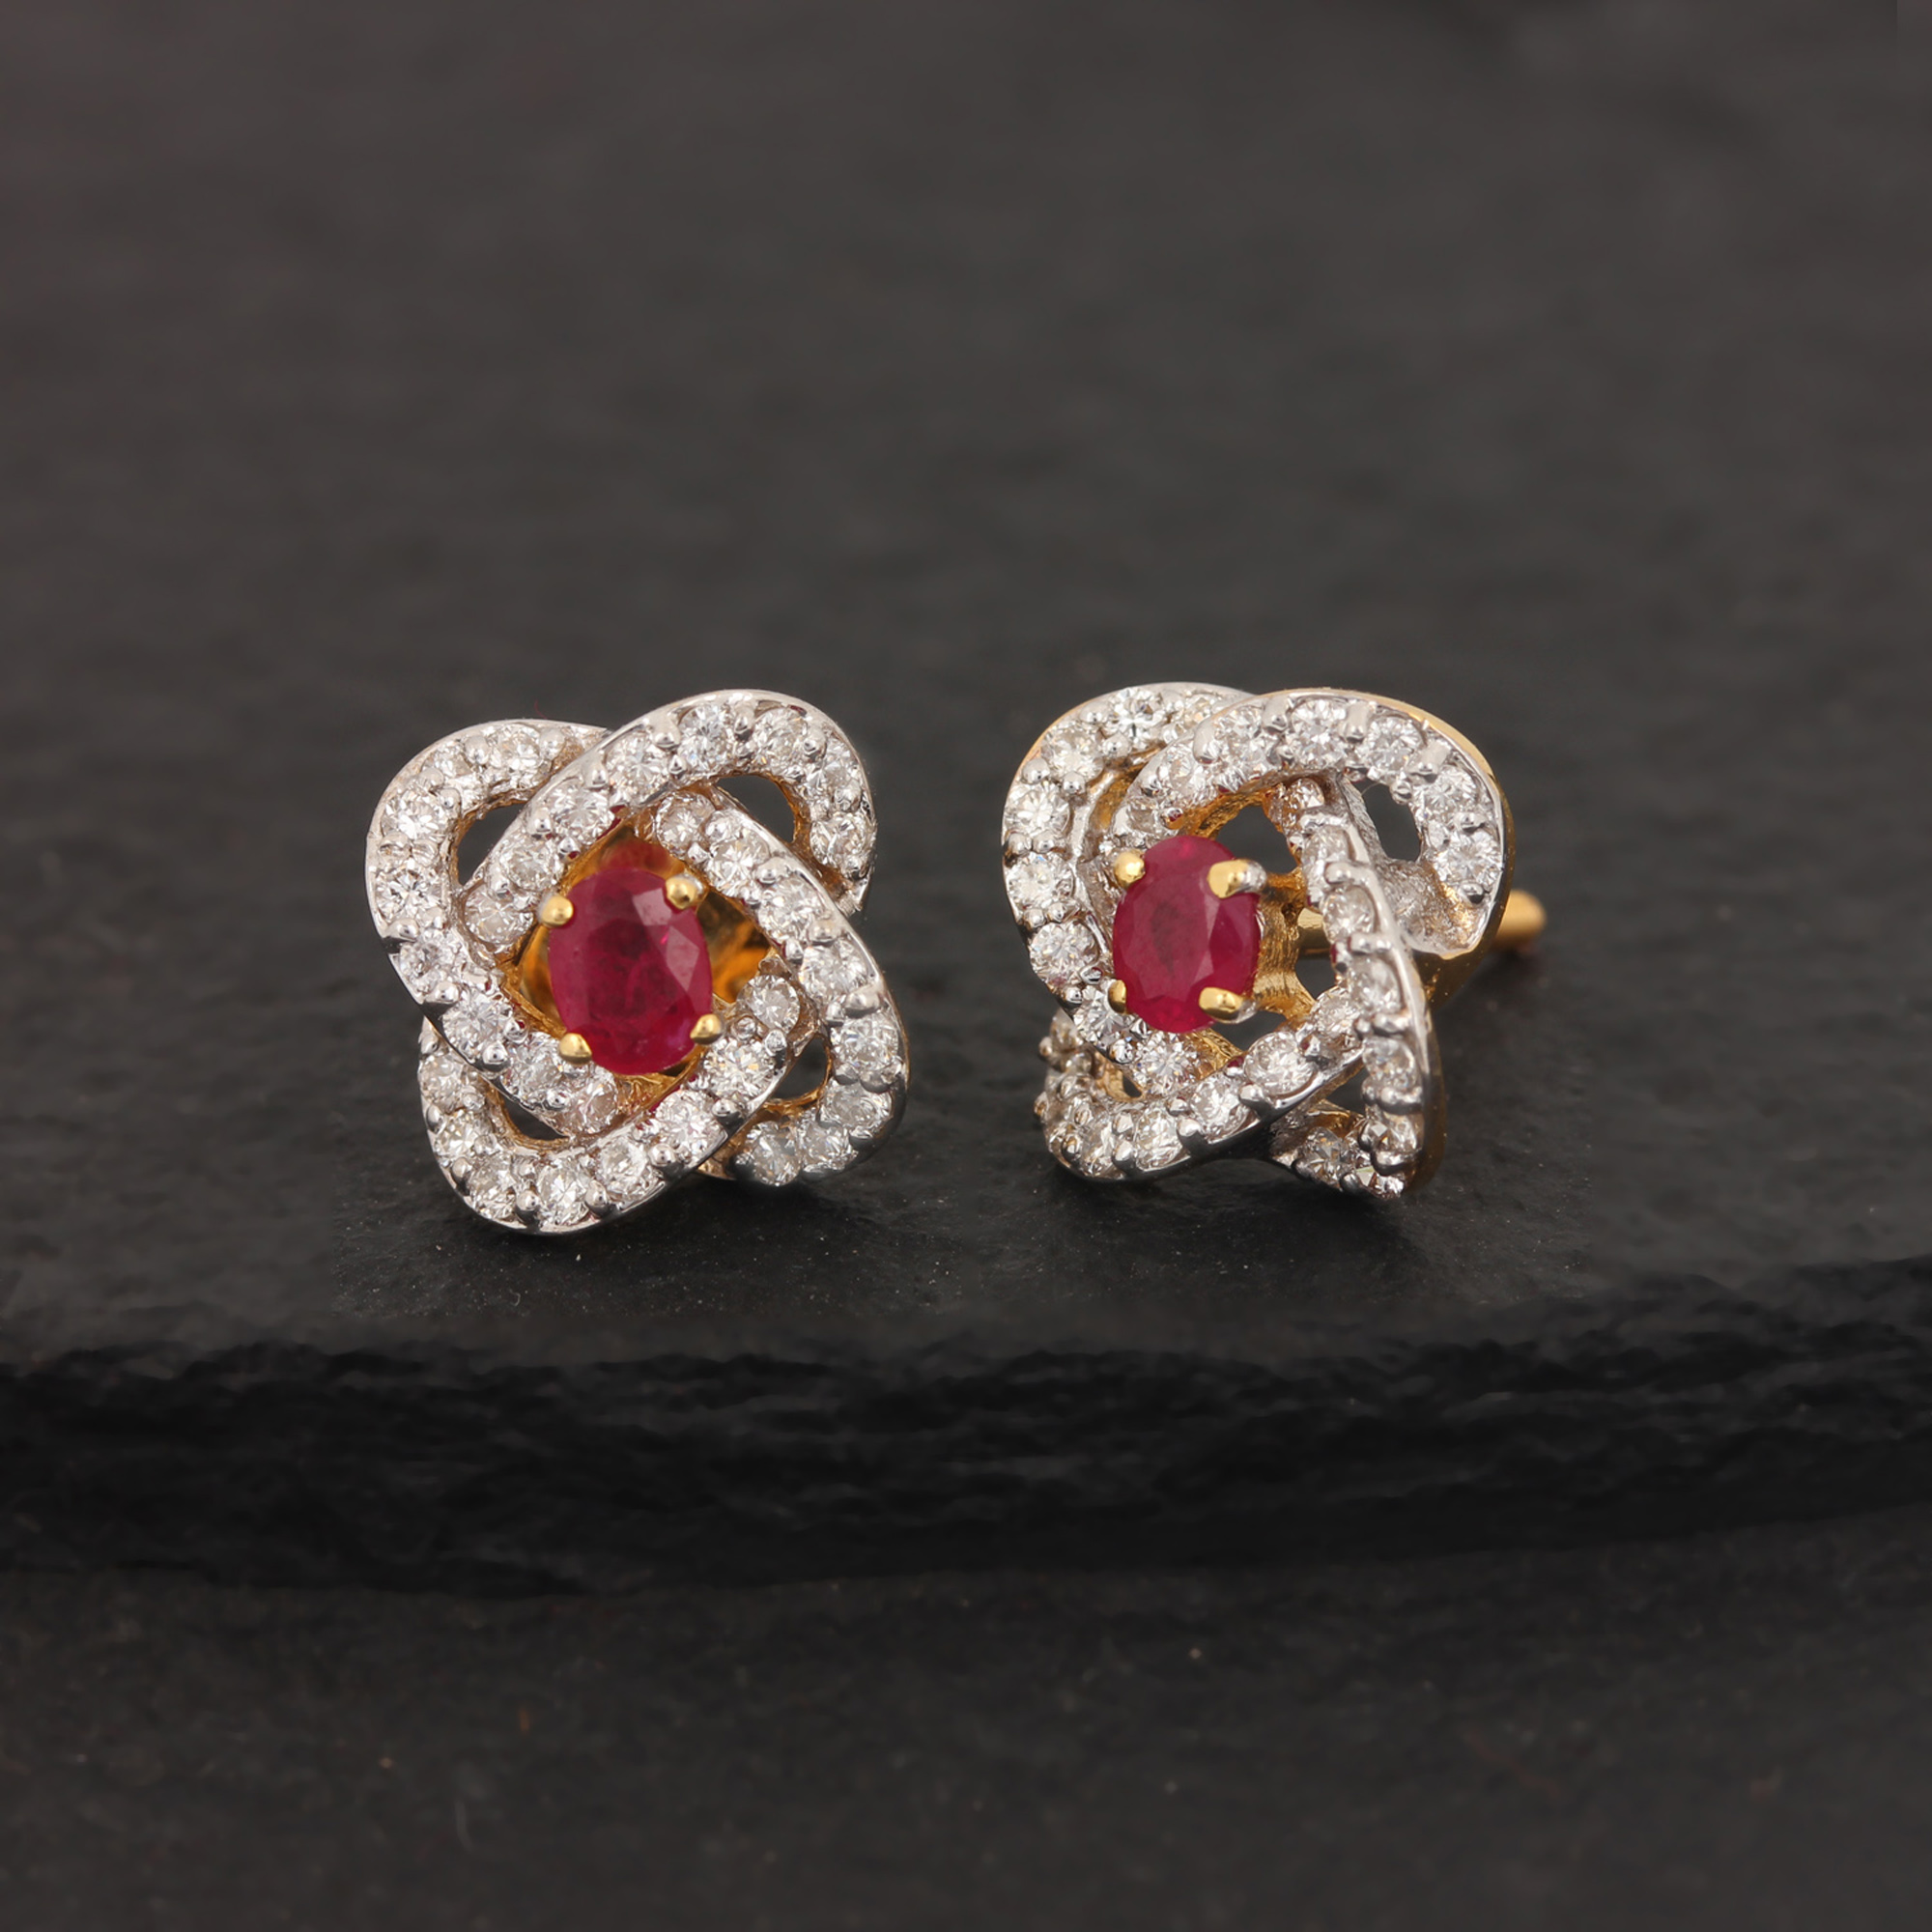 Gold Diamond Earrings With Ruby